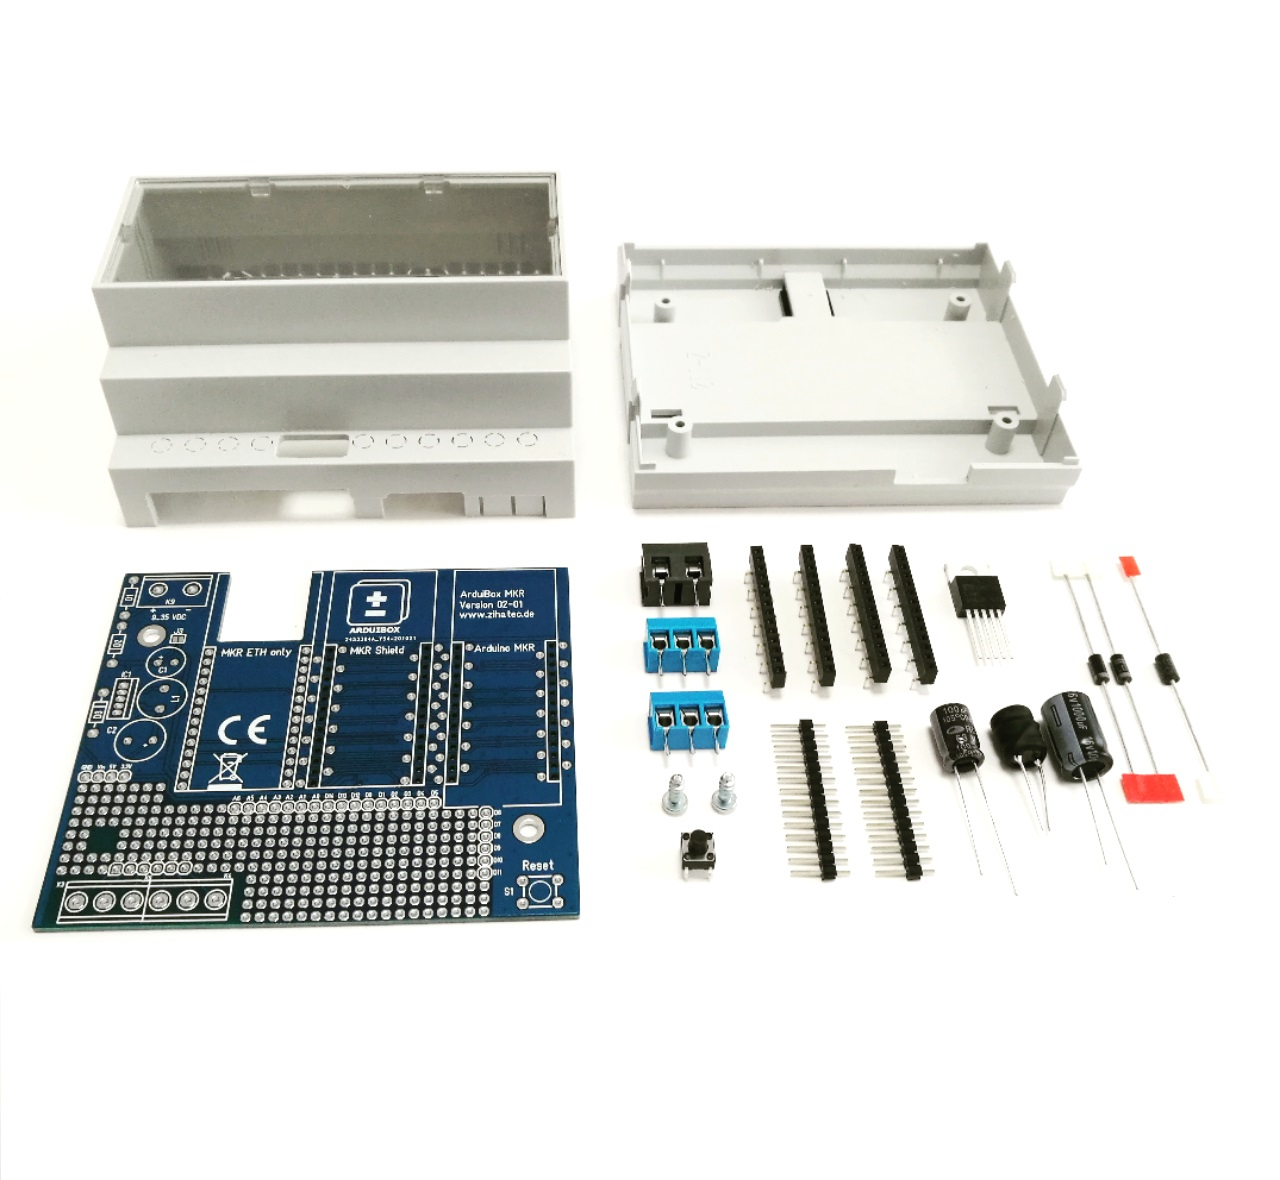 Arduibox MKR standard kit with additional parts